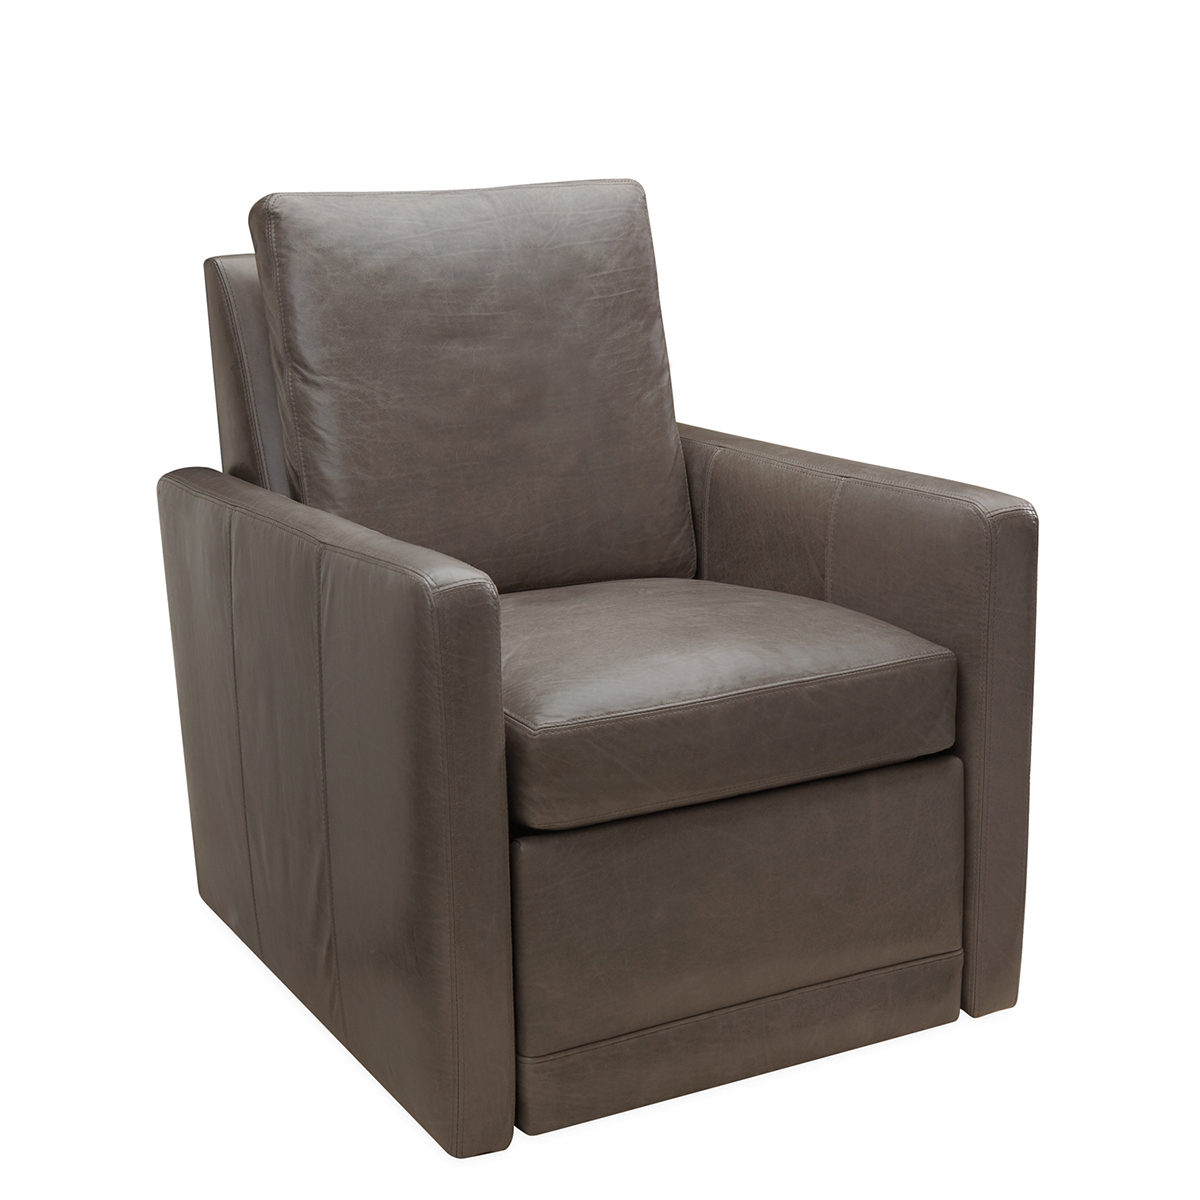 Relaxor_Swivel_Recliner_L1229-01RS_Lee_Industries.jpg